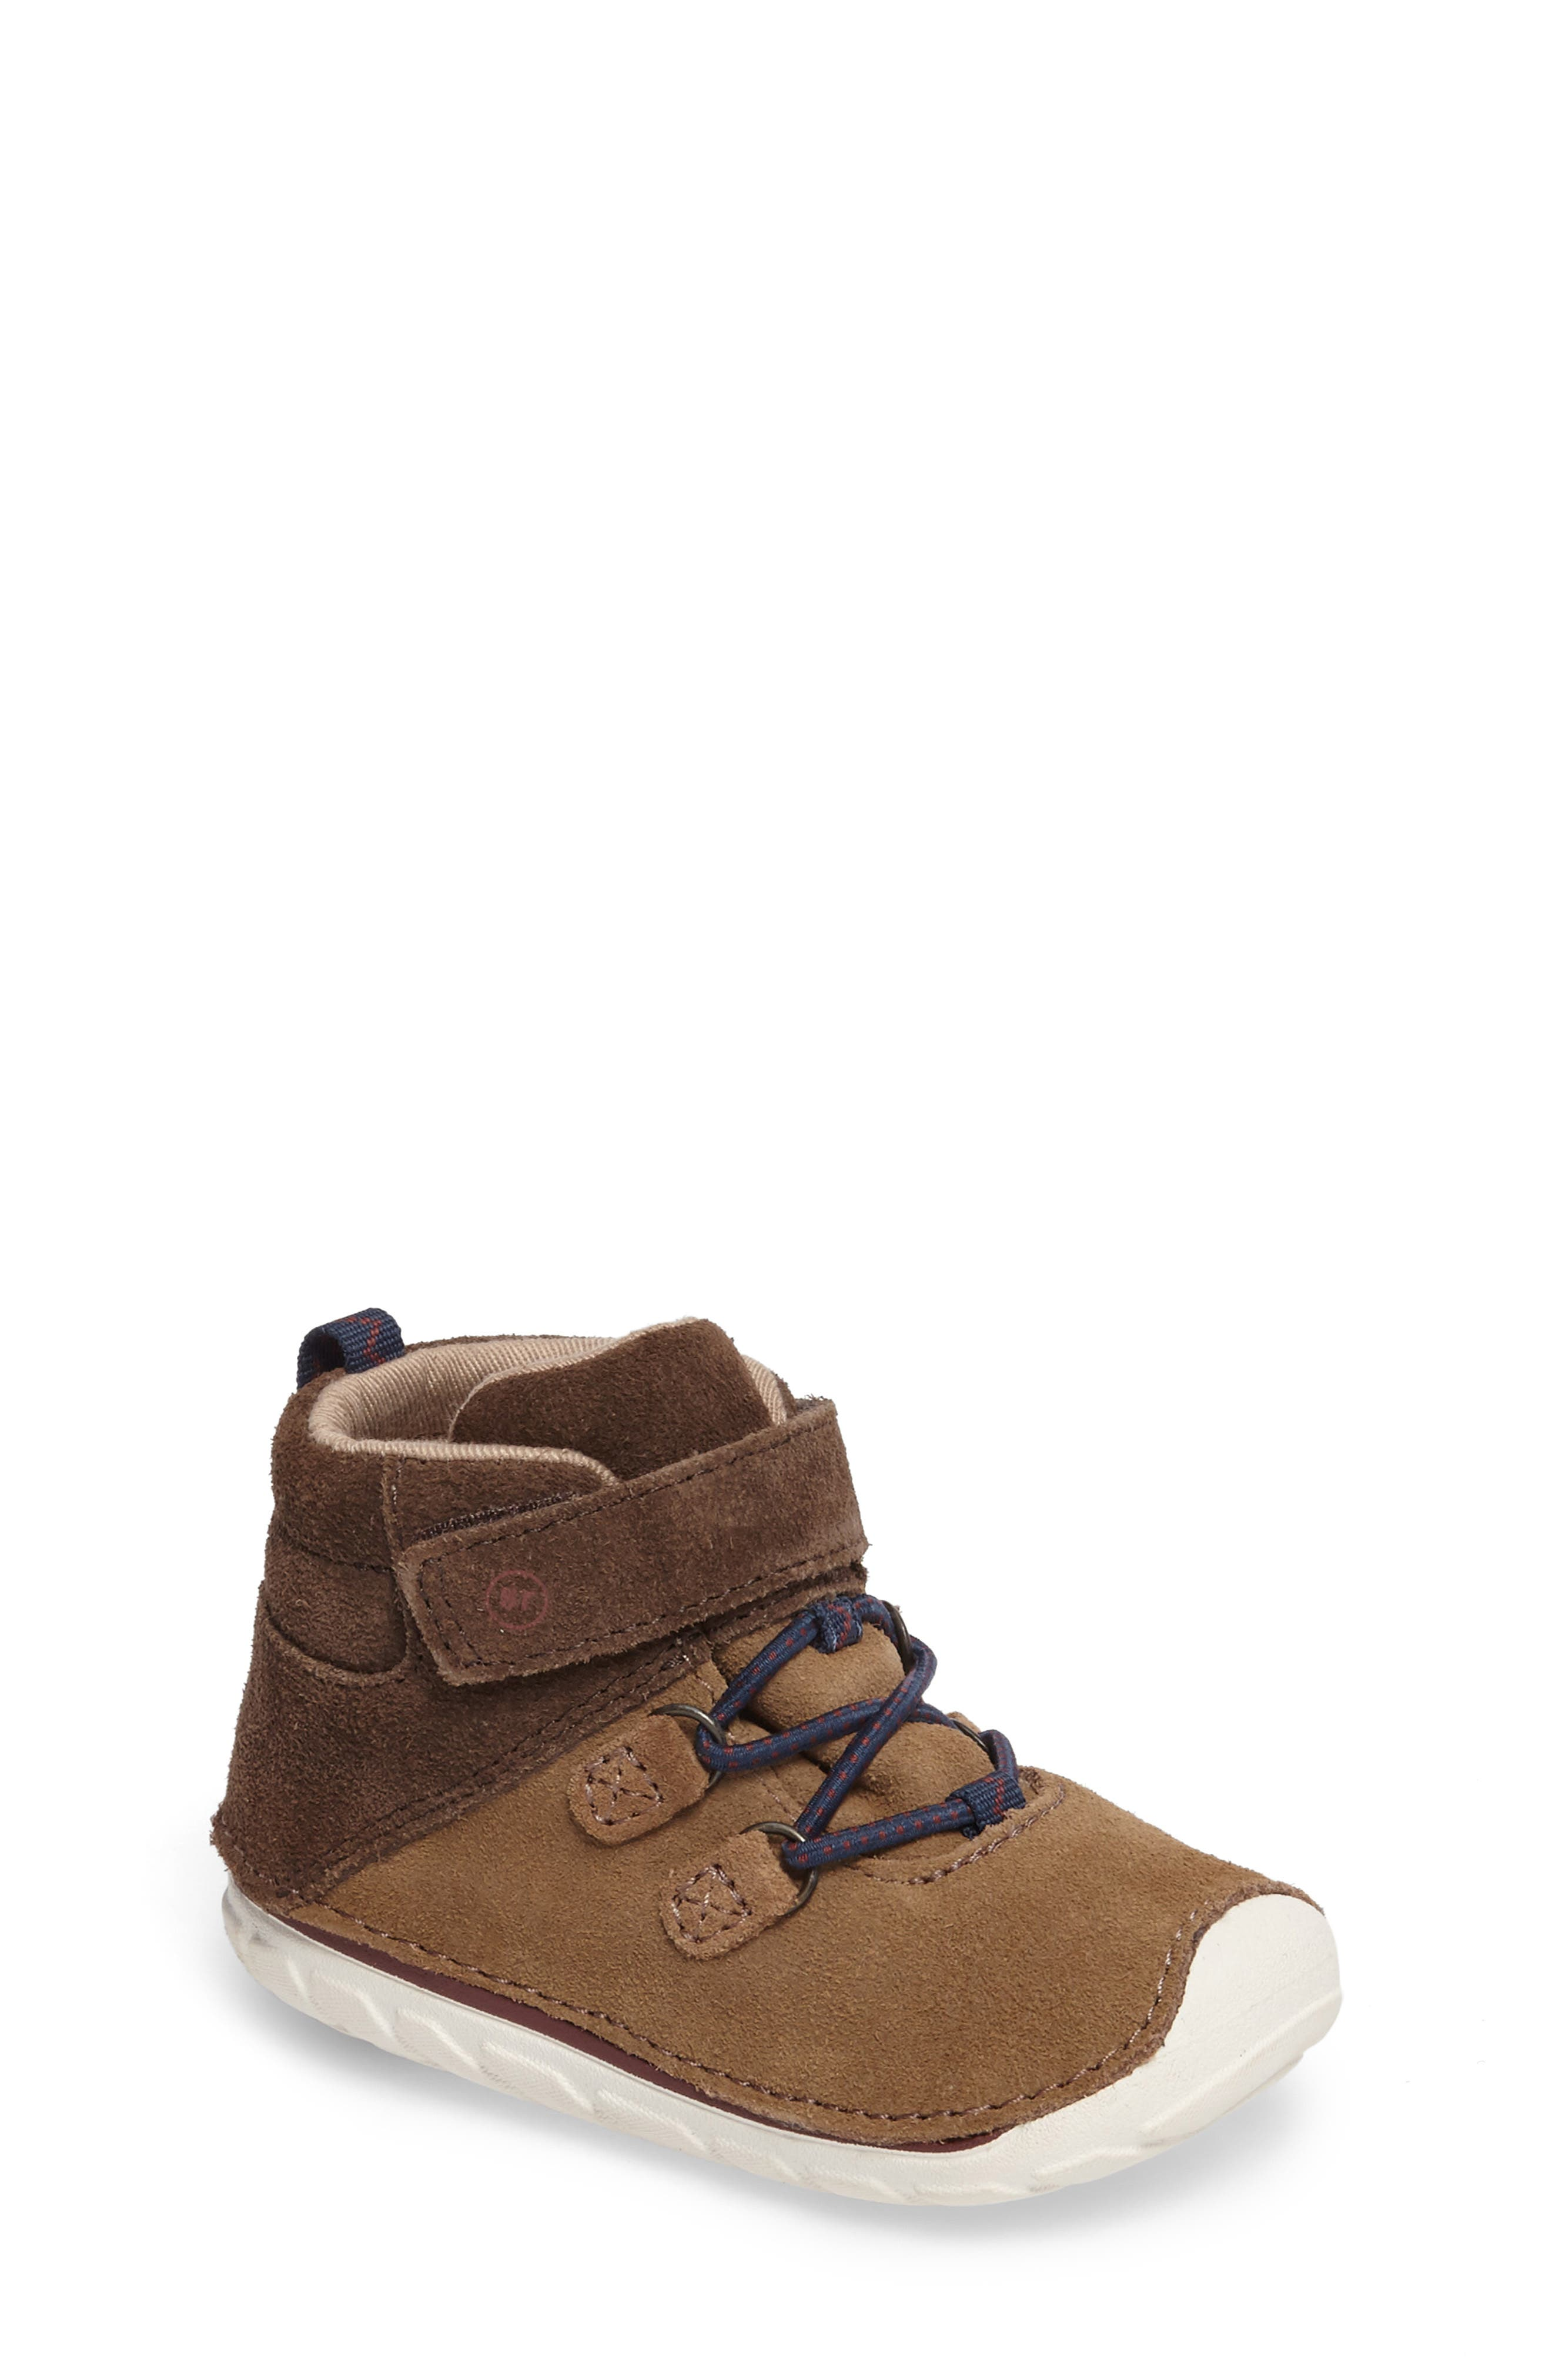 Main Image - Stride Rite Soft Motion™ Oliver High Top Sneaker (Baby & Walker)